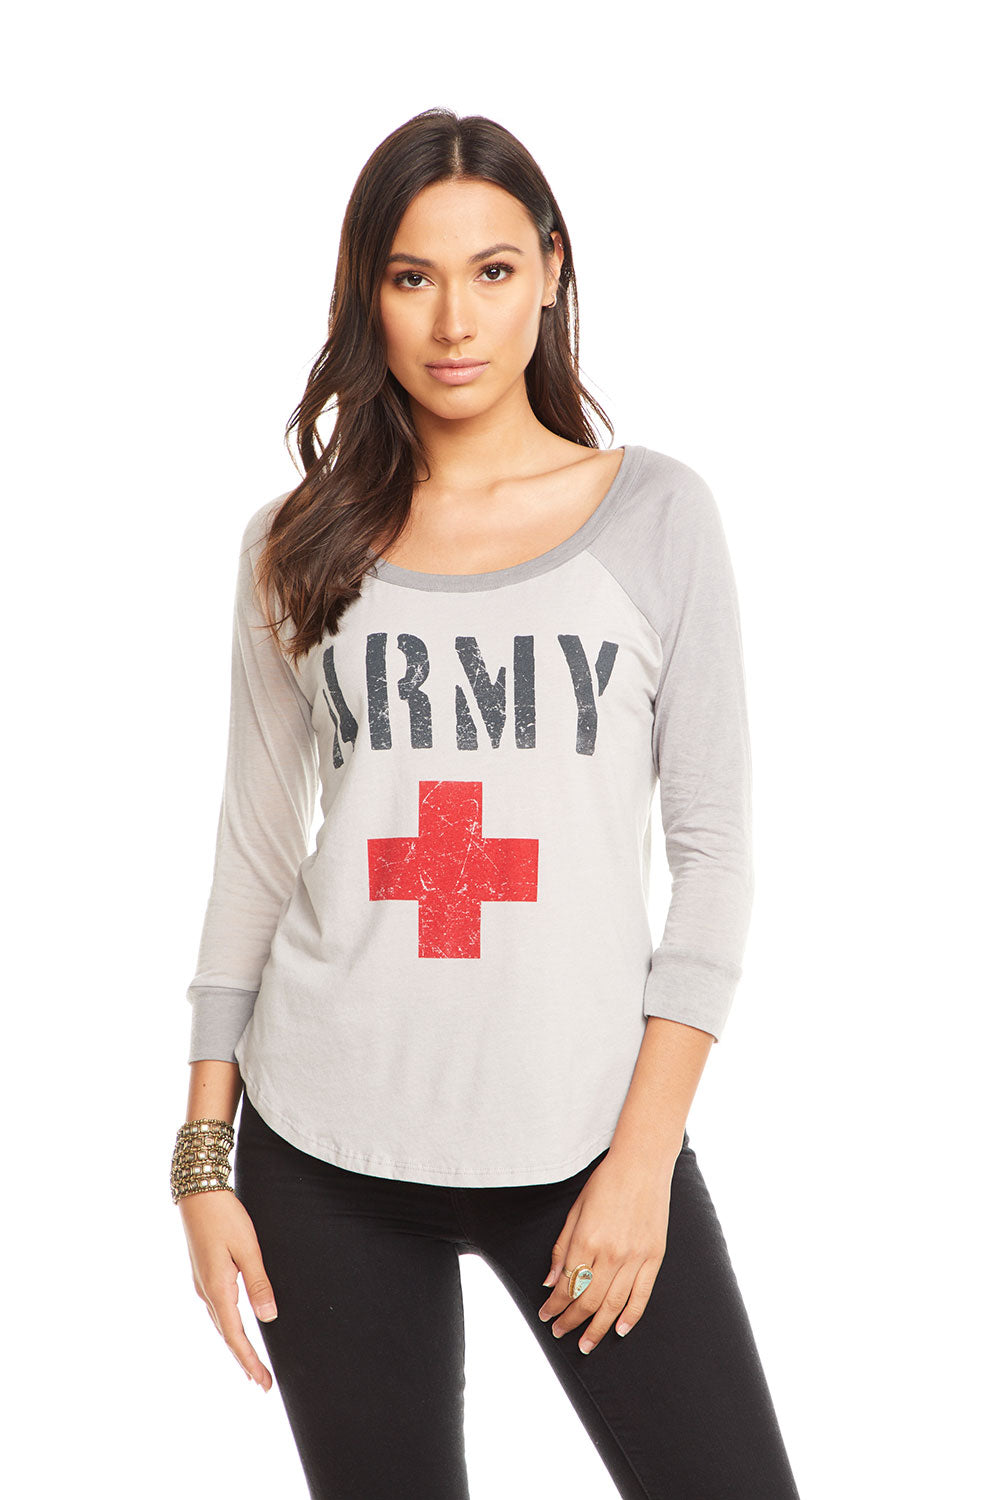 Army, WOMENS, chaserbrand.com,chaser clothing,chaser apparel,chaser los angeles